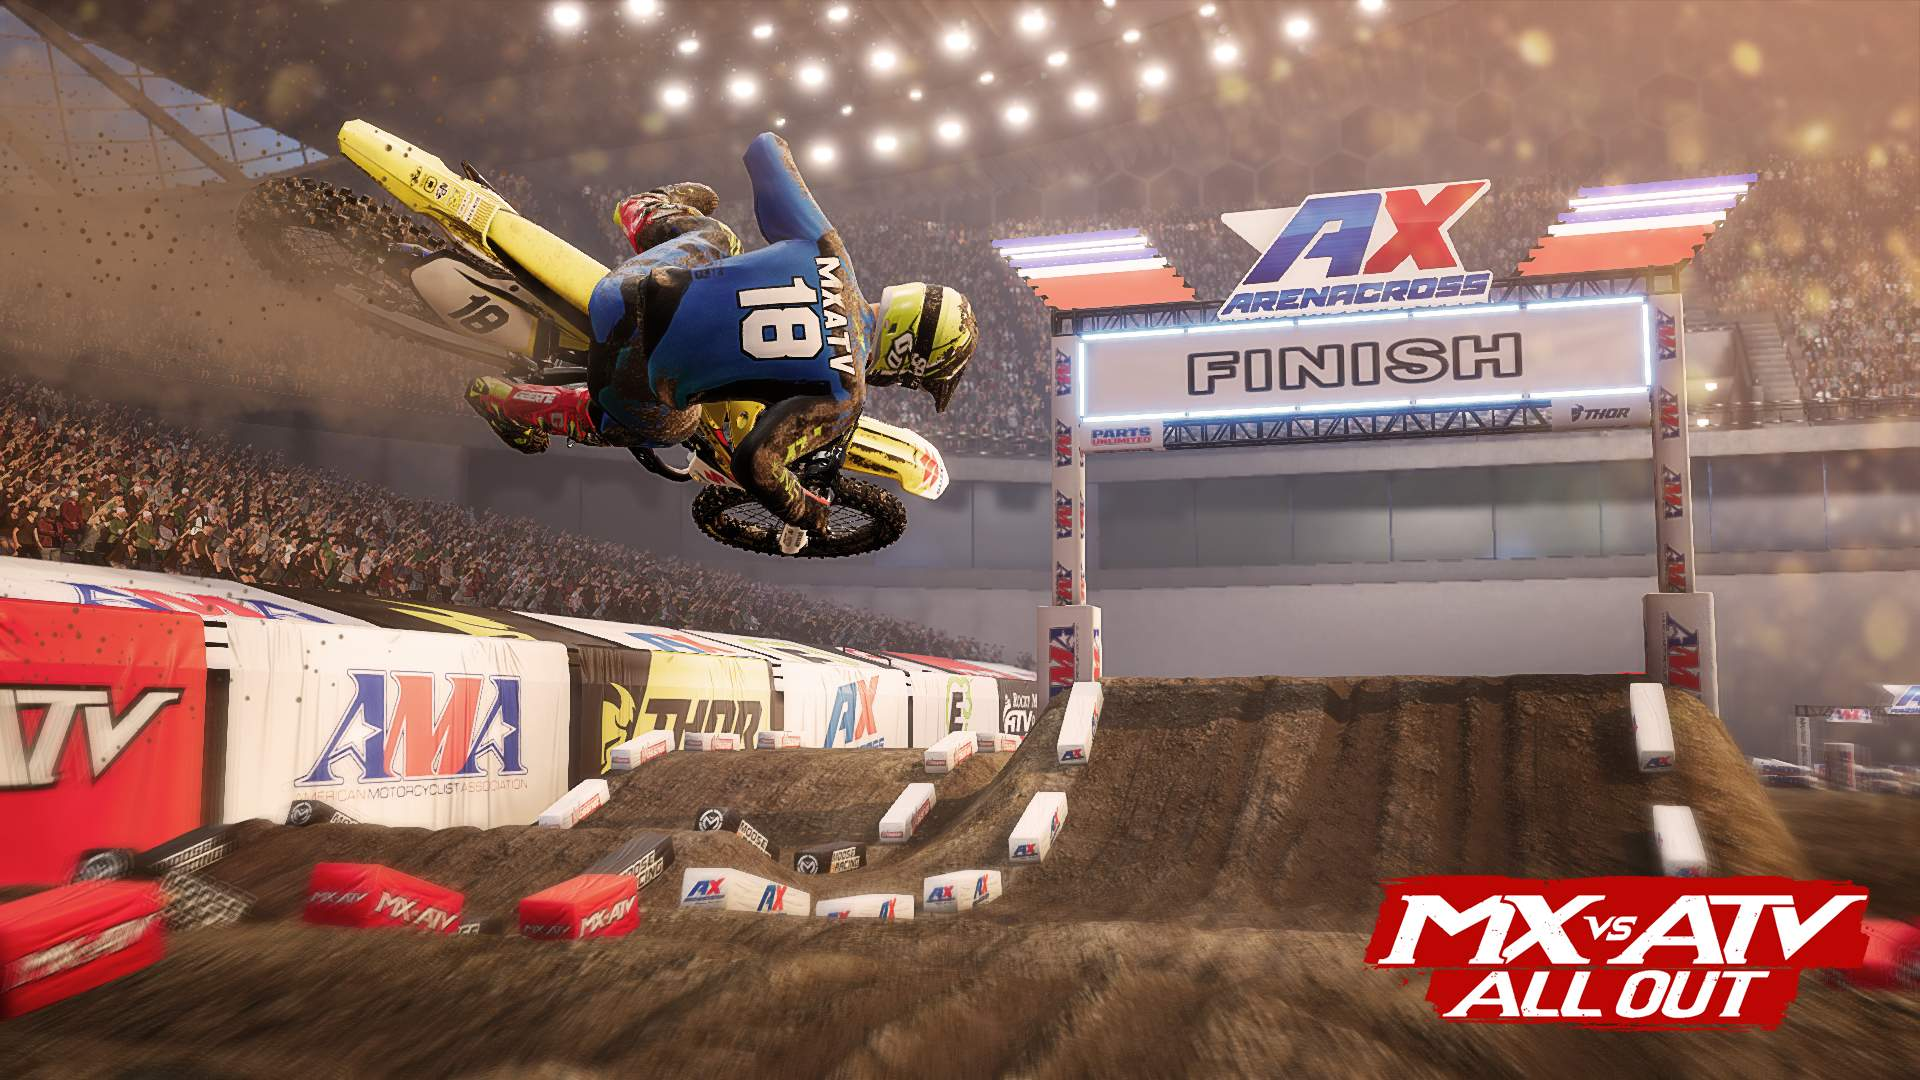 mx vs atv all out 2018 ama arenacross on ps4 official. Black Bedroom Furniture Sets. Home Design Ideas